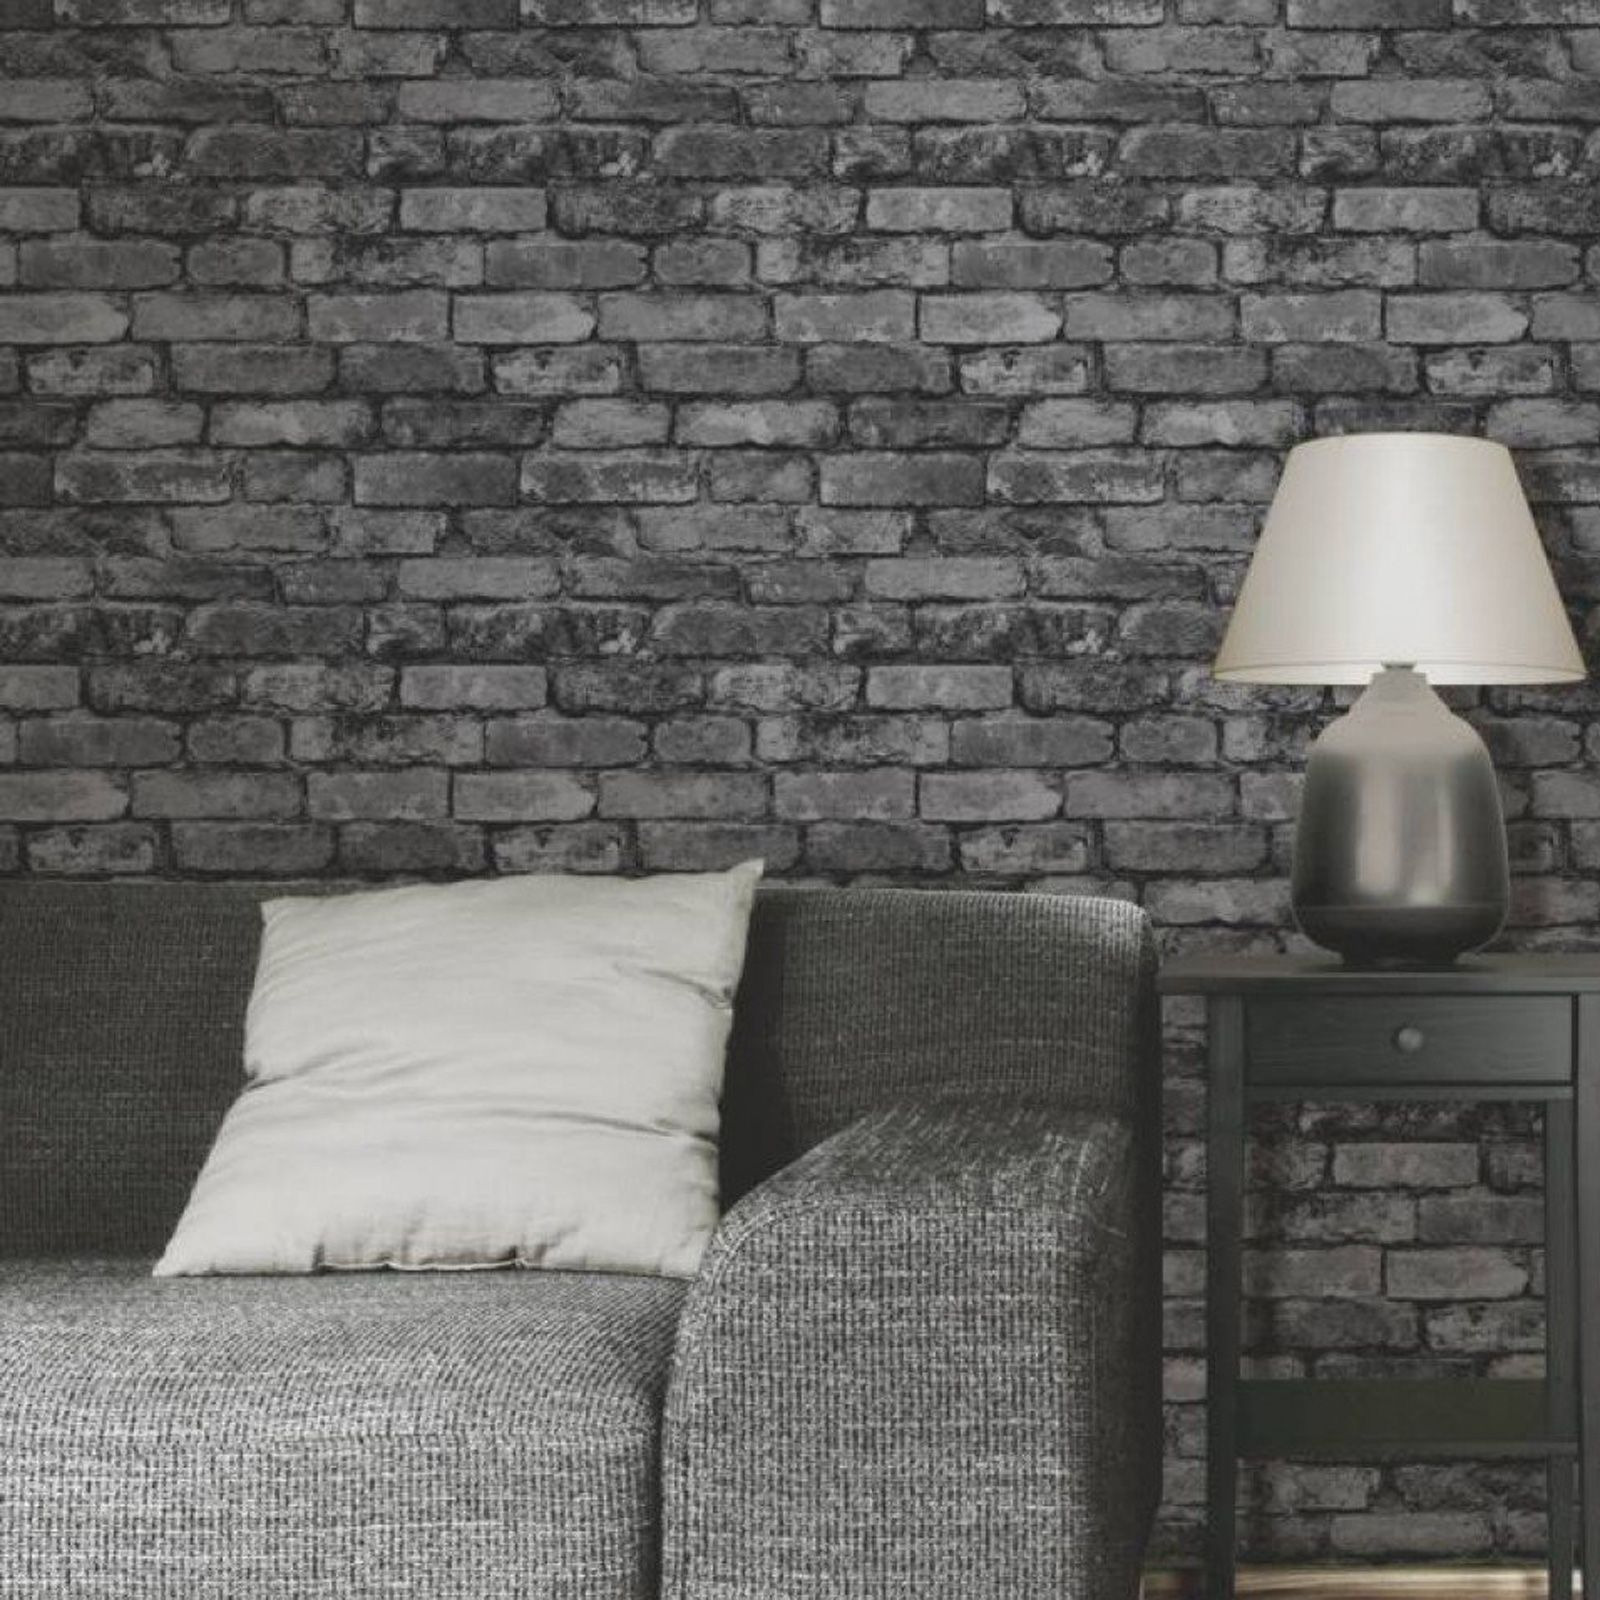 This Fantastically Realistic Fine Decor Black Grey Brick Effect Wallpaper Will Make A Great Grey Brick Effect Wallpaper Brick Effect Wallpaper Brick Wallpaper